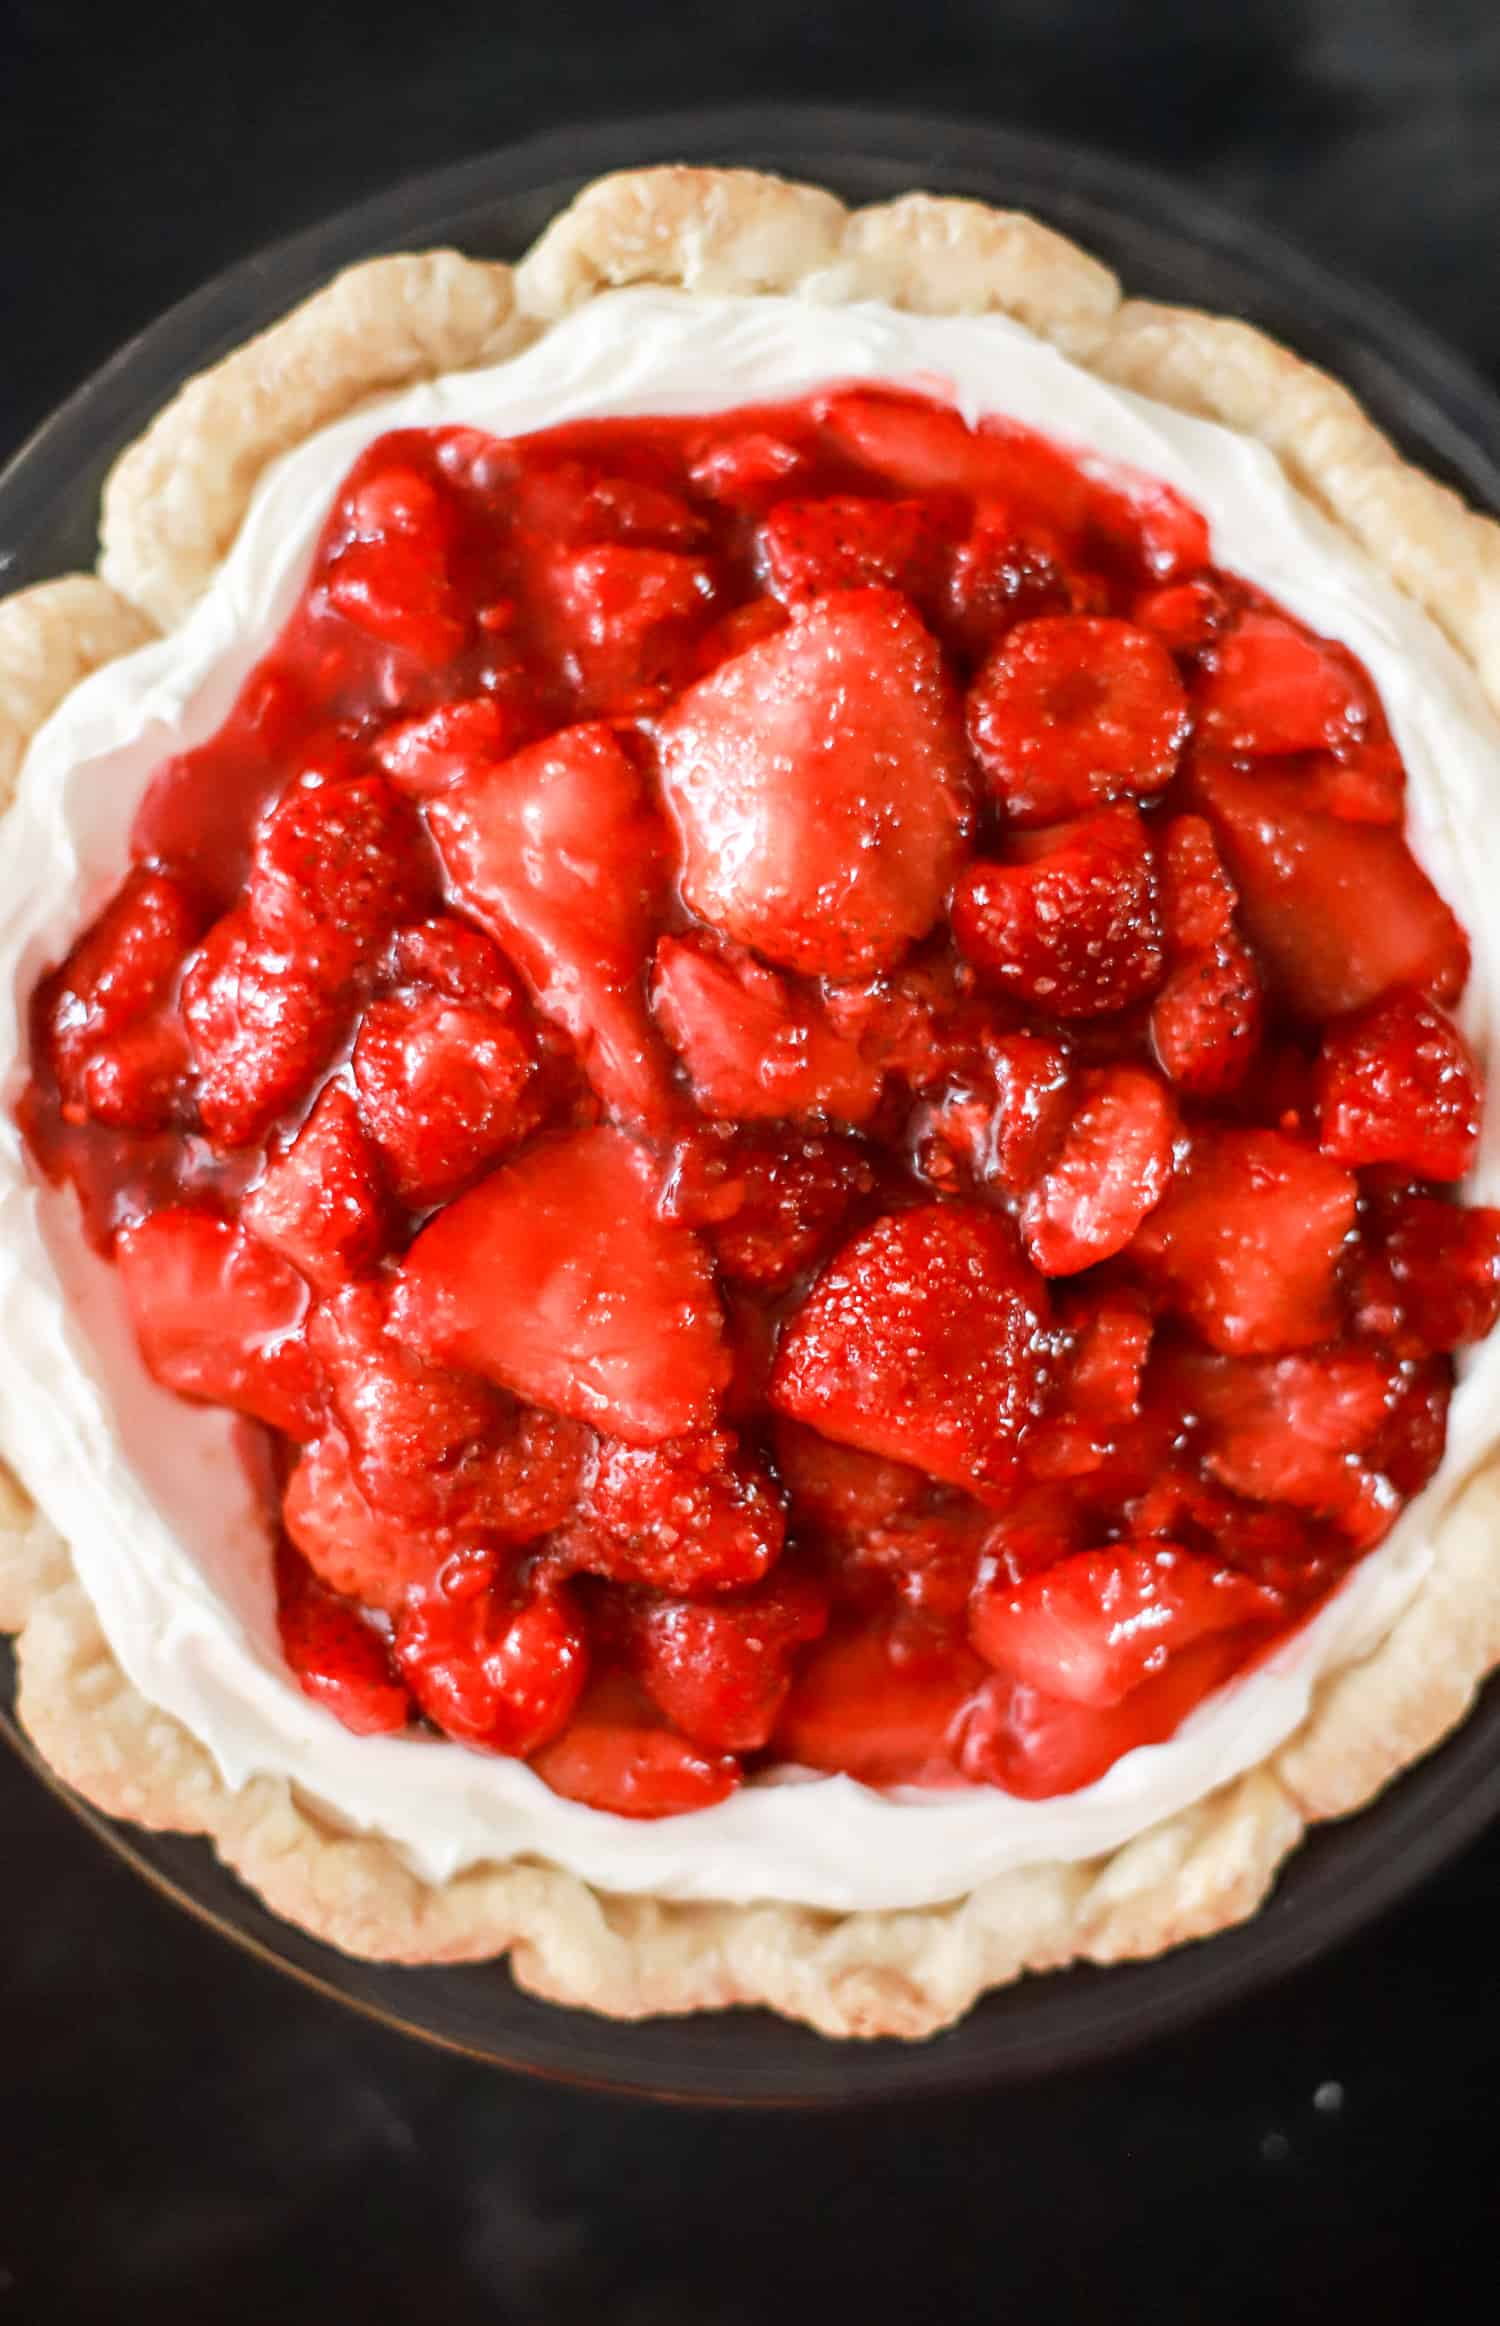 strawberries in pie crust before chilling